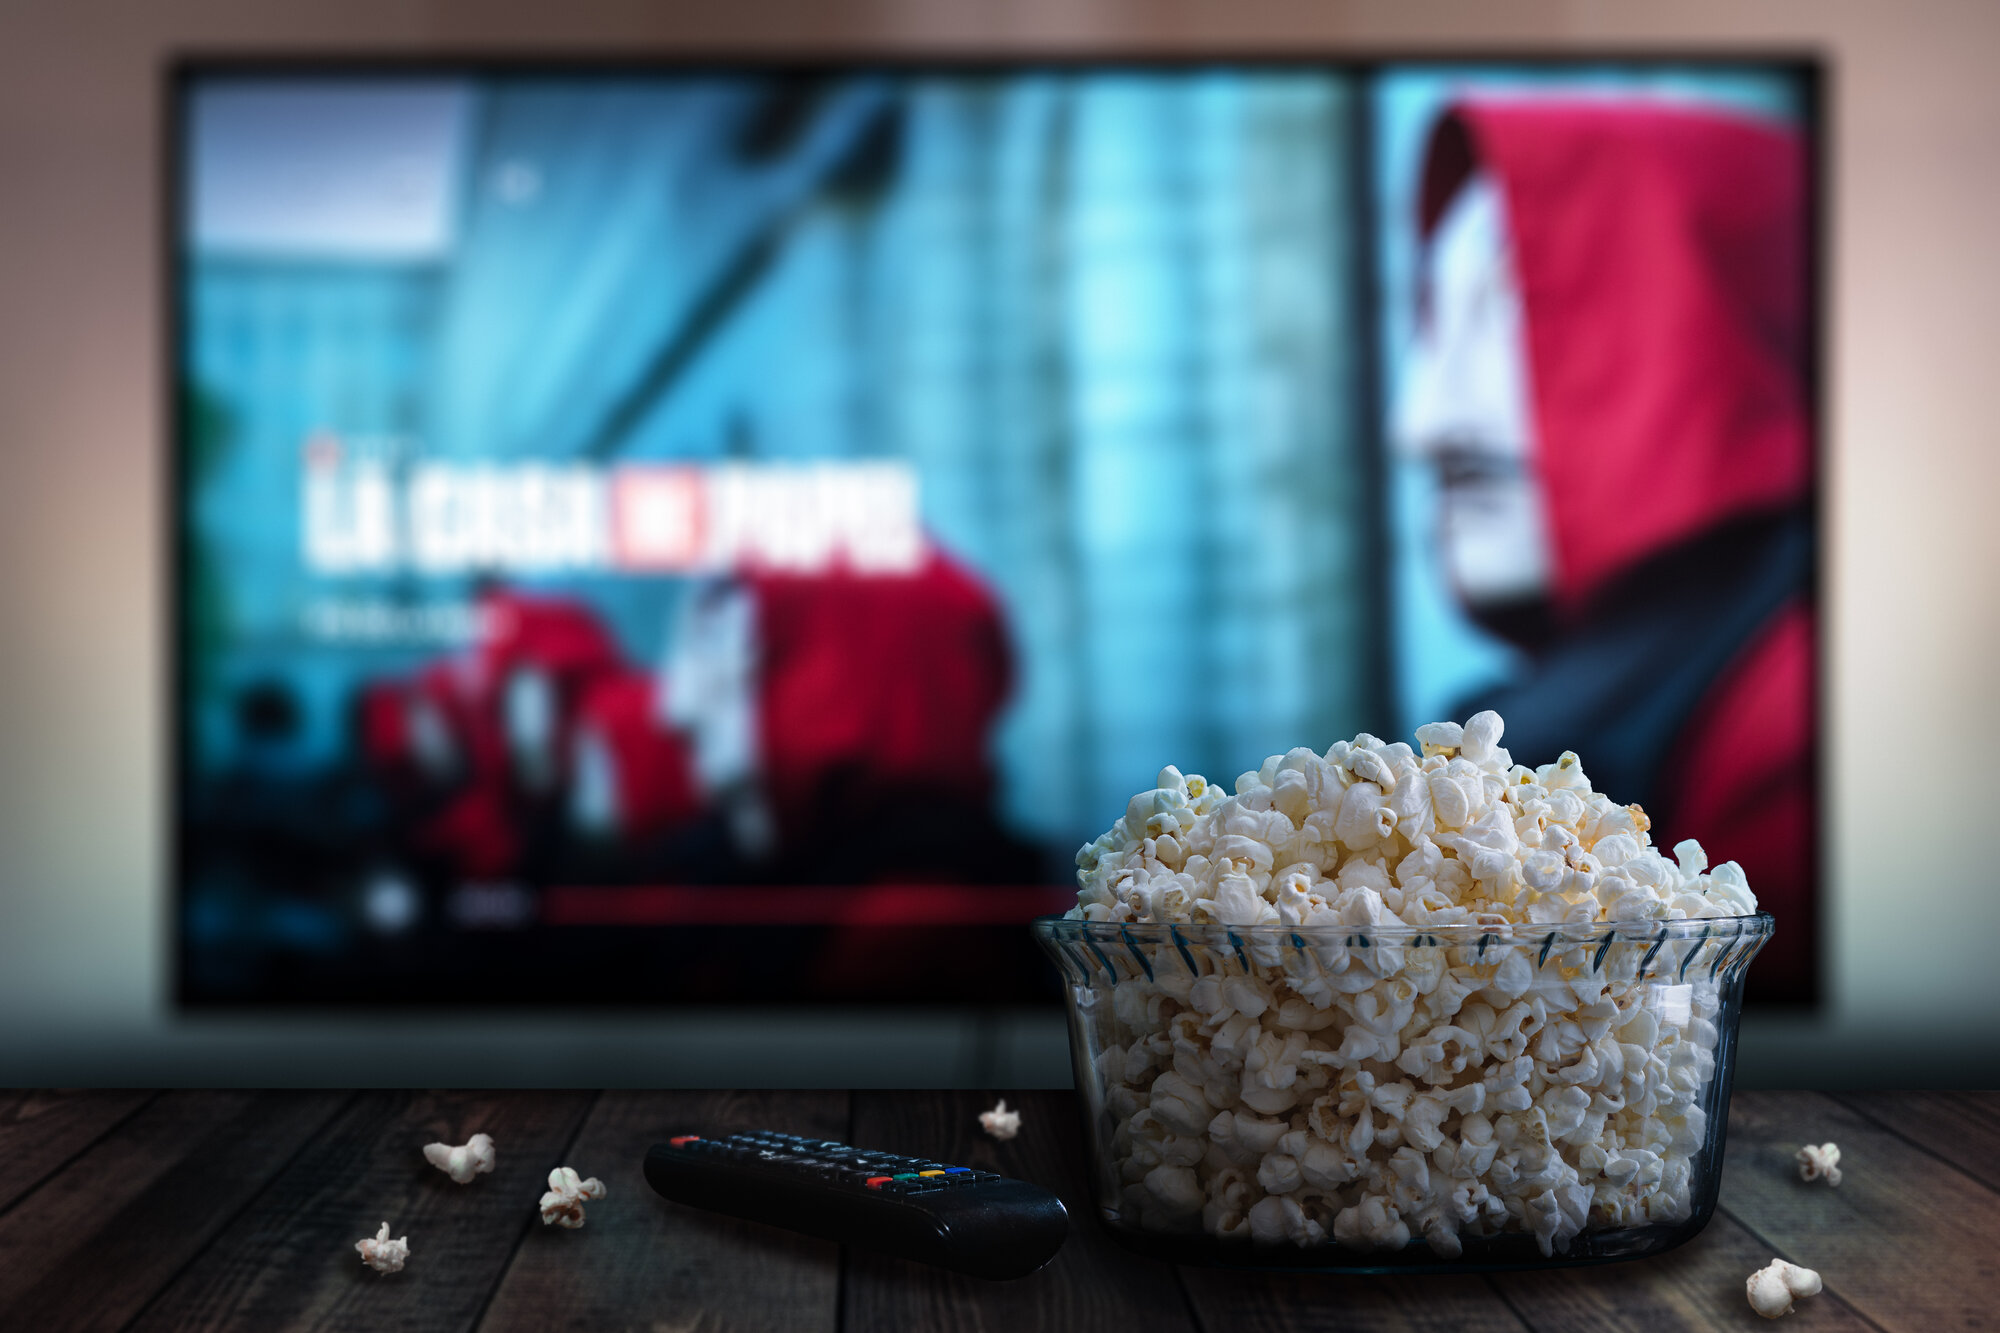 Bad news, Netflix fans – a new price hike might be coming soon